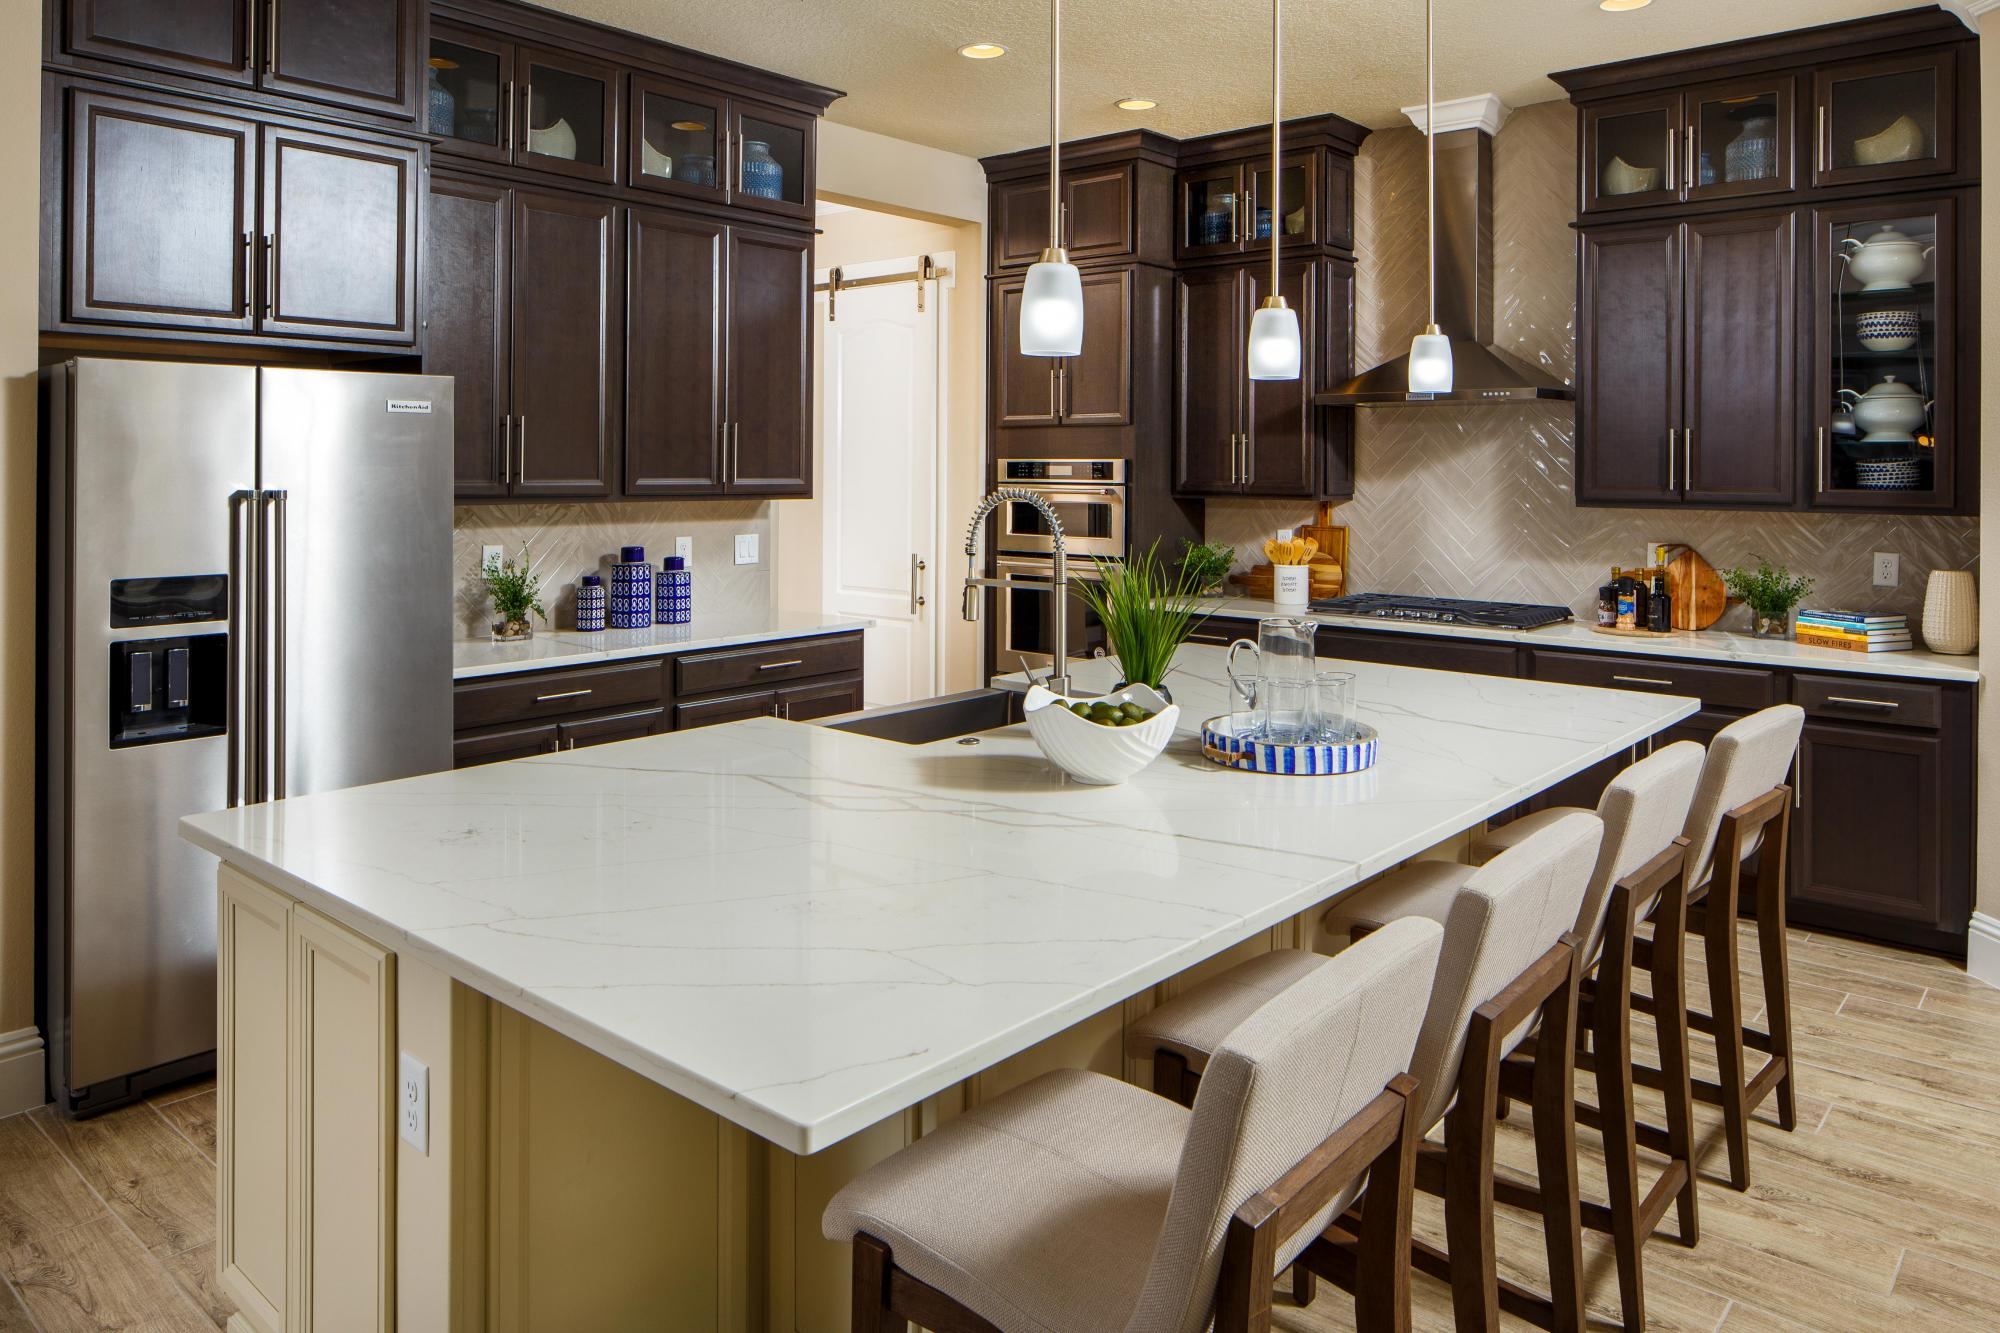 383444253355264_avalon_cove_kitchen